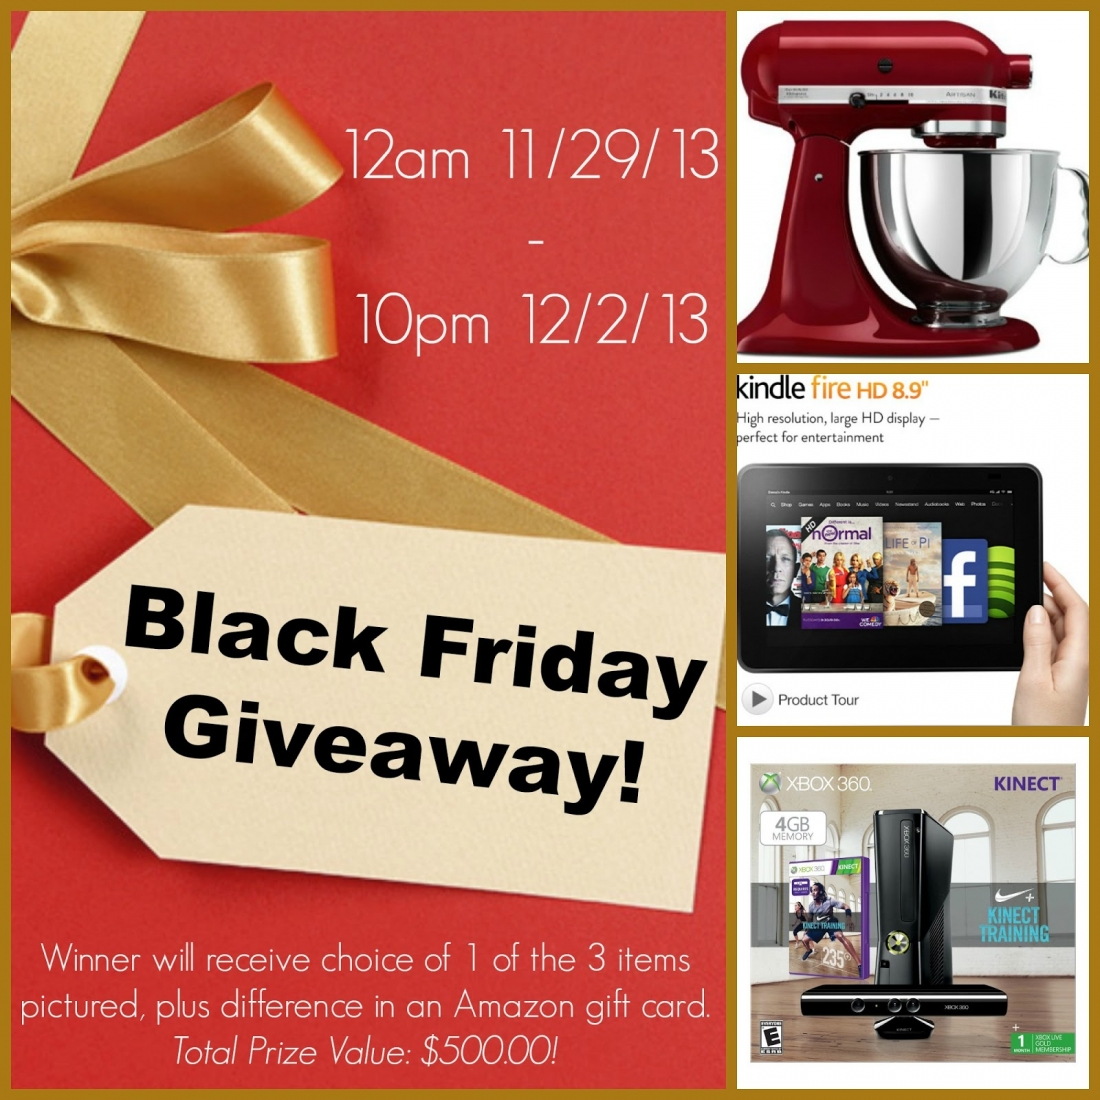 Win your choice of three amazing prizes -- a KitchenAid stand mixer, Kindle Fire or XBox Kinect Nike+ Bundle -- plus an Amazon gift card, for a total prize value of $500!!